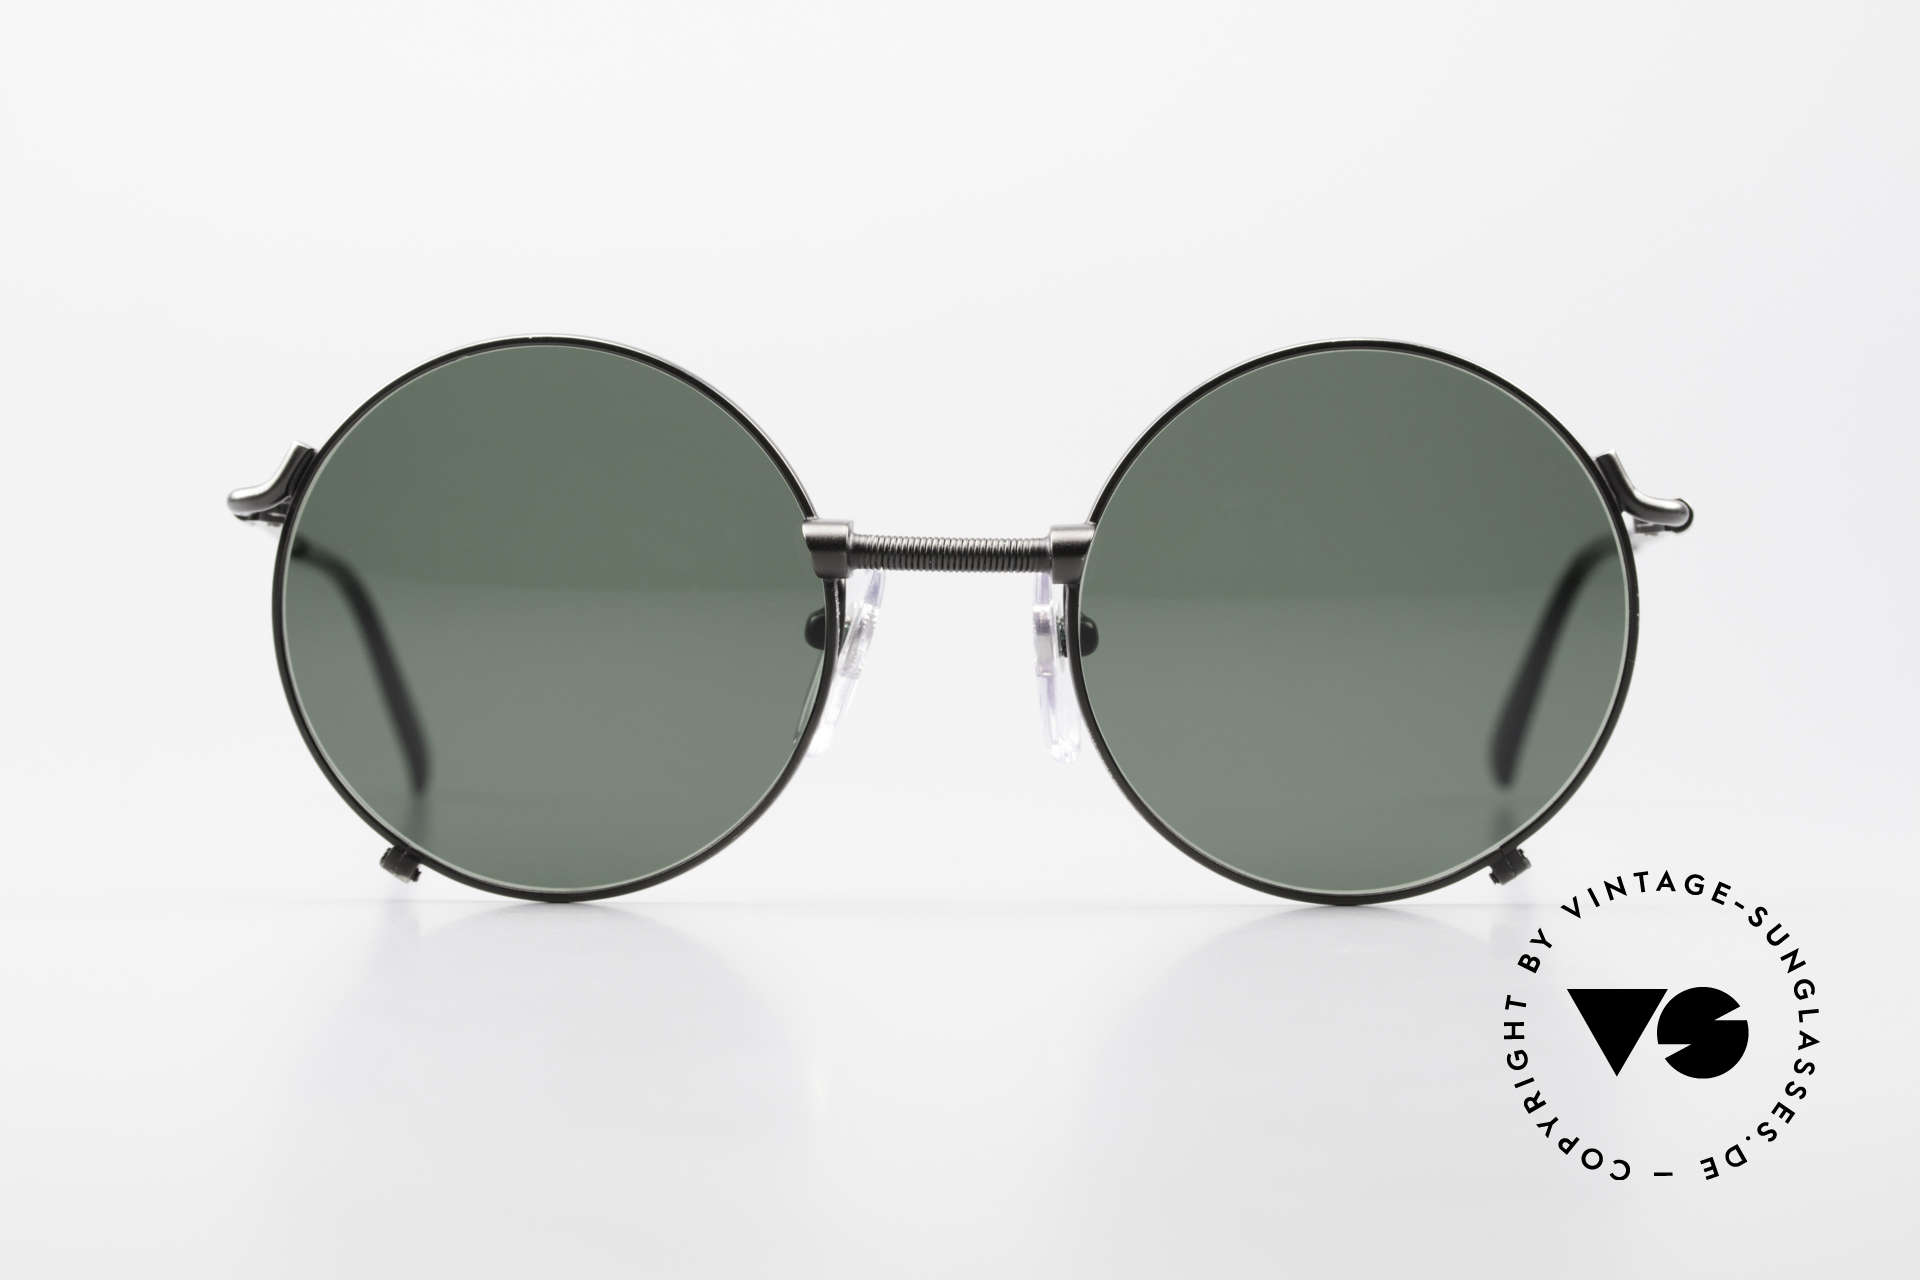 Jean Paul Gaultier 55-7162 Round Vintage Sunglasses 90s, round metal sunglasses in HIGH-END quality, Made for Men and Women